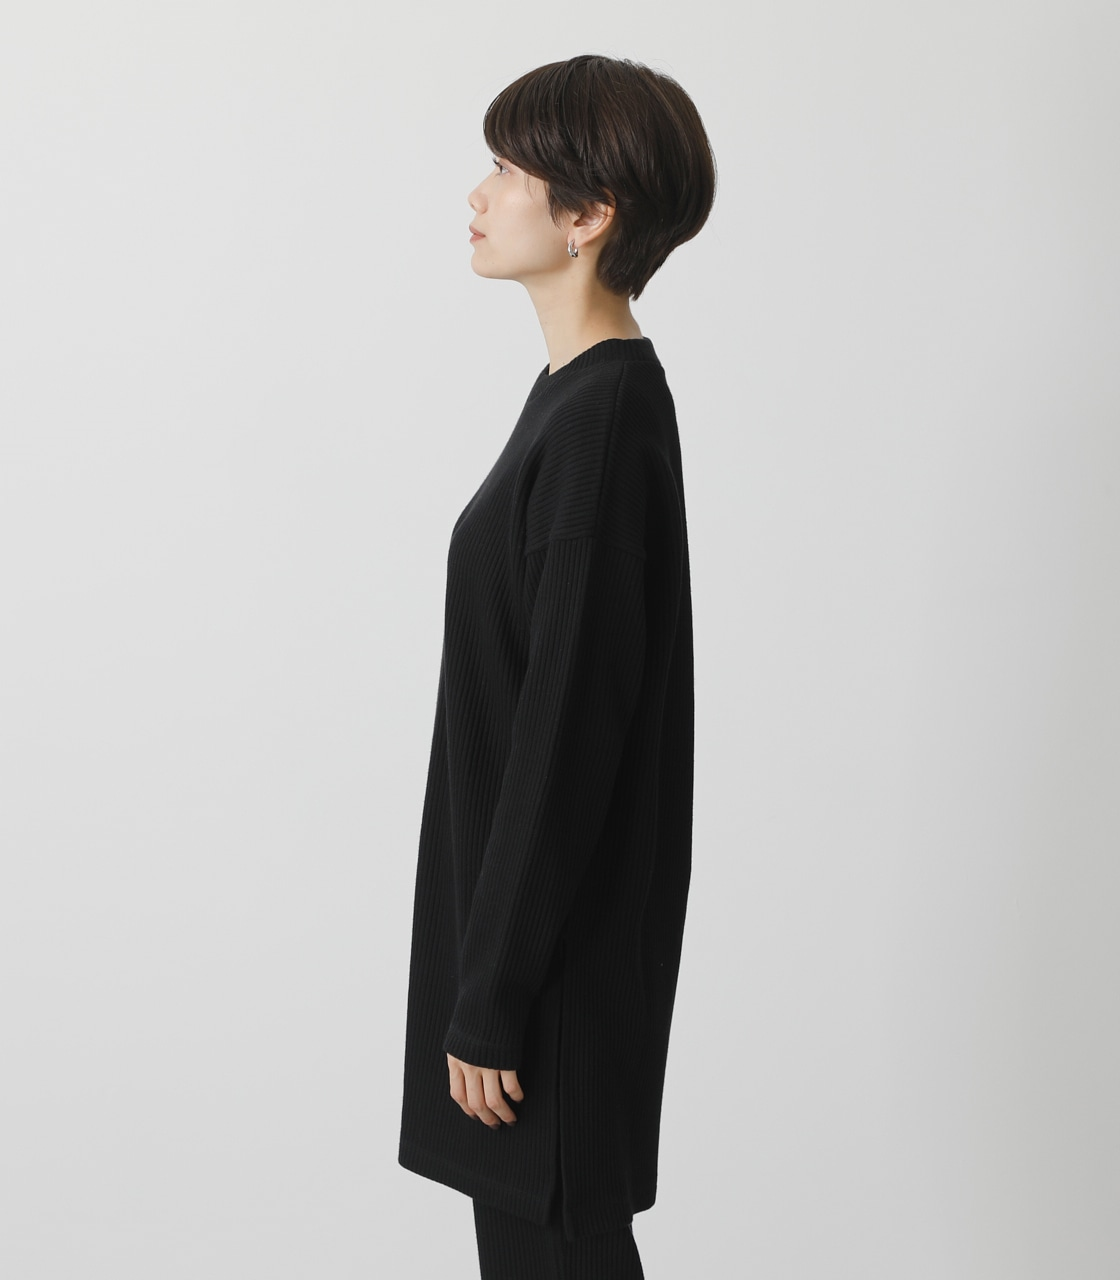 T/H SIDE SLIT LONG TOPS/T/Hサイドスリットロングトップス 詳細画像 BLK 6